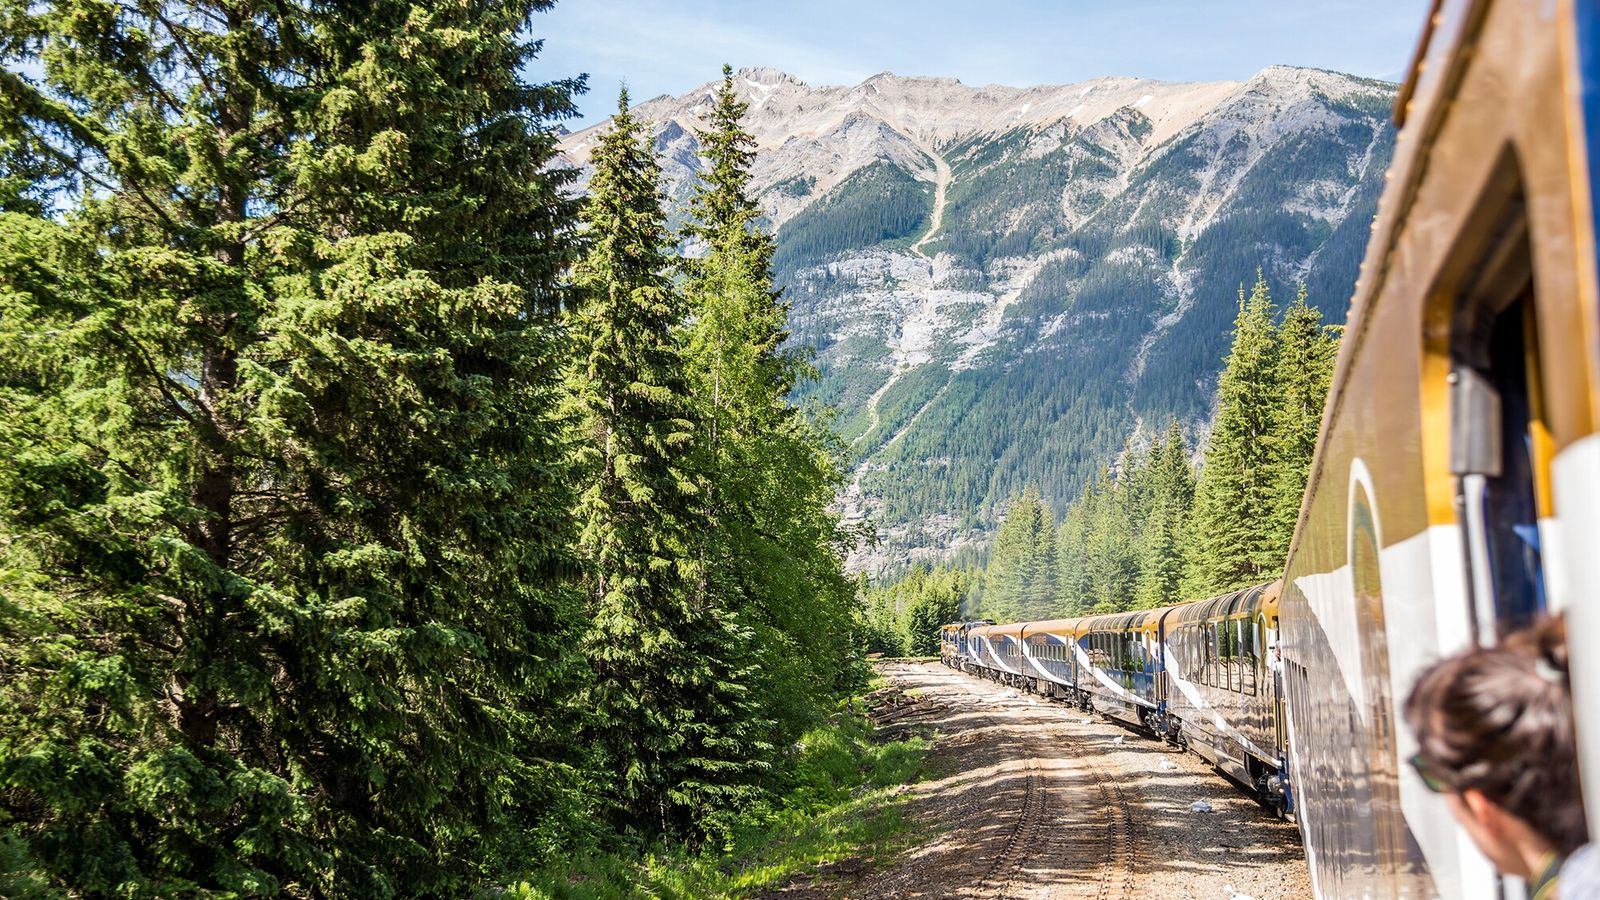 The Rocky Mountaineer bisects the wildlife-rich, forested valleys of British Columbia.